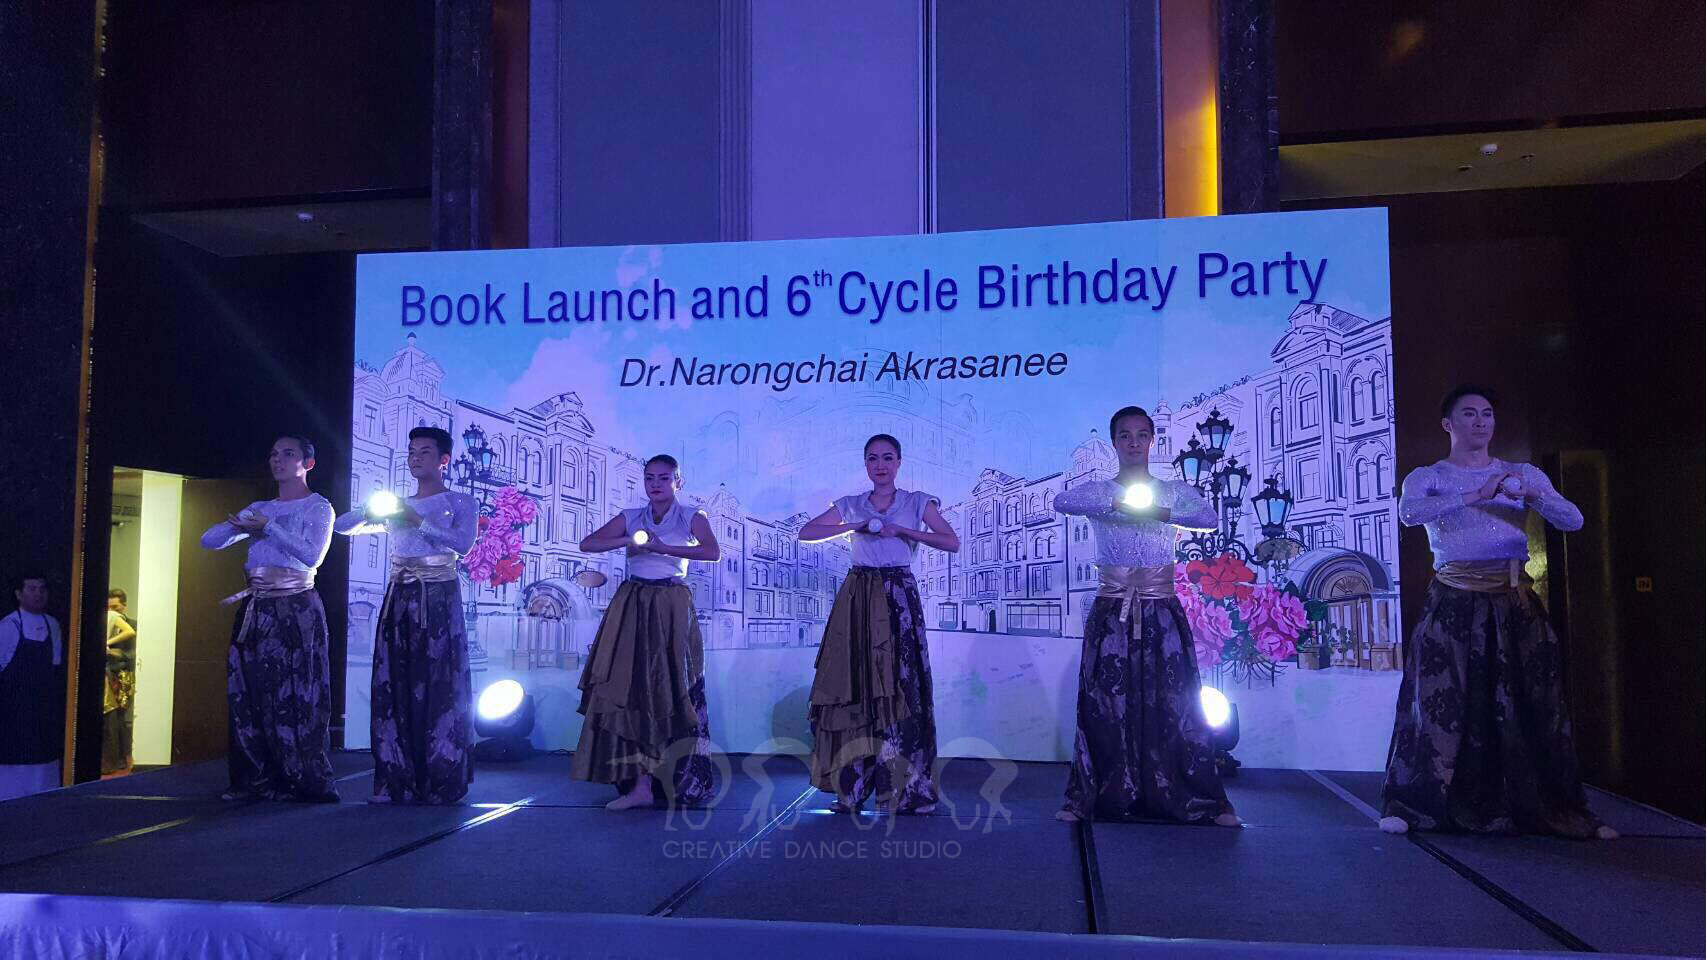 Book Launch and Birthday Party